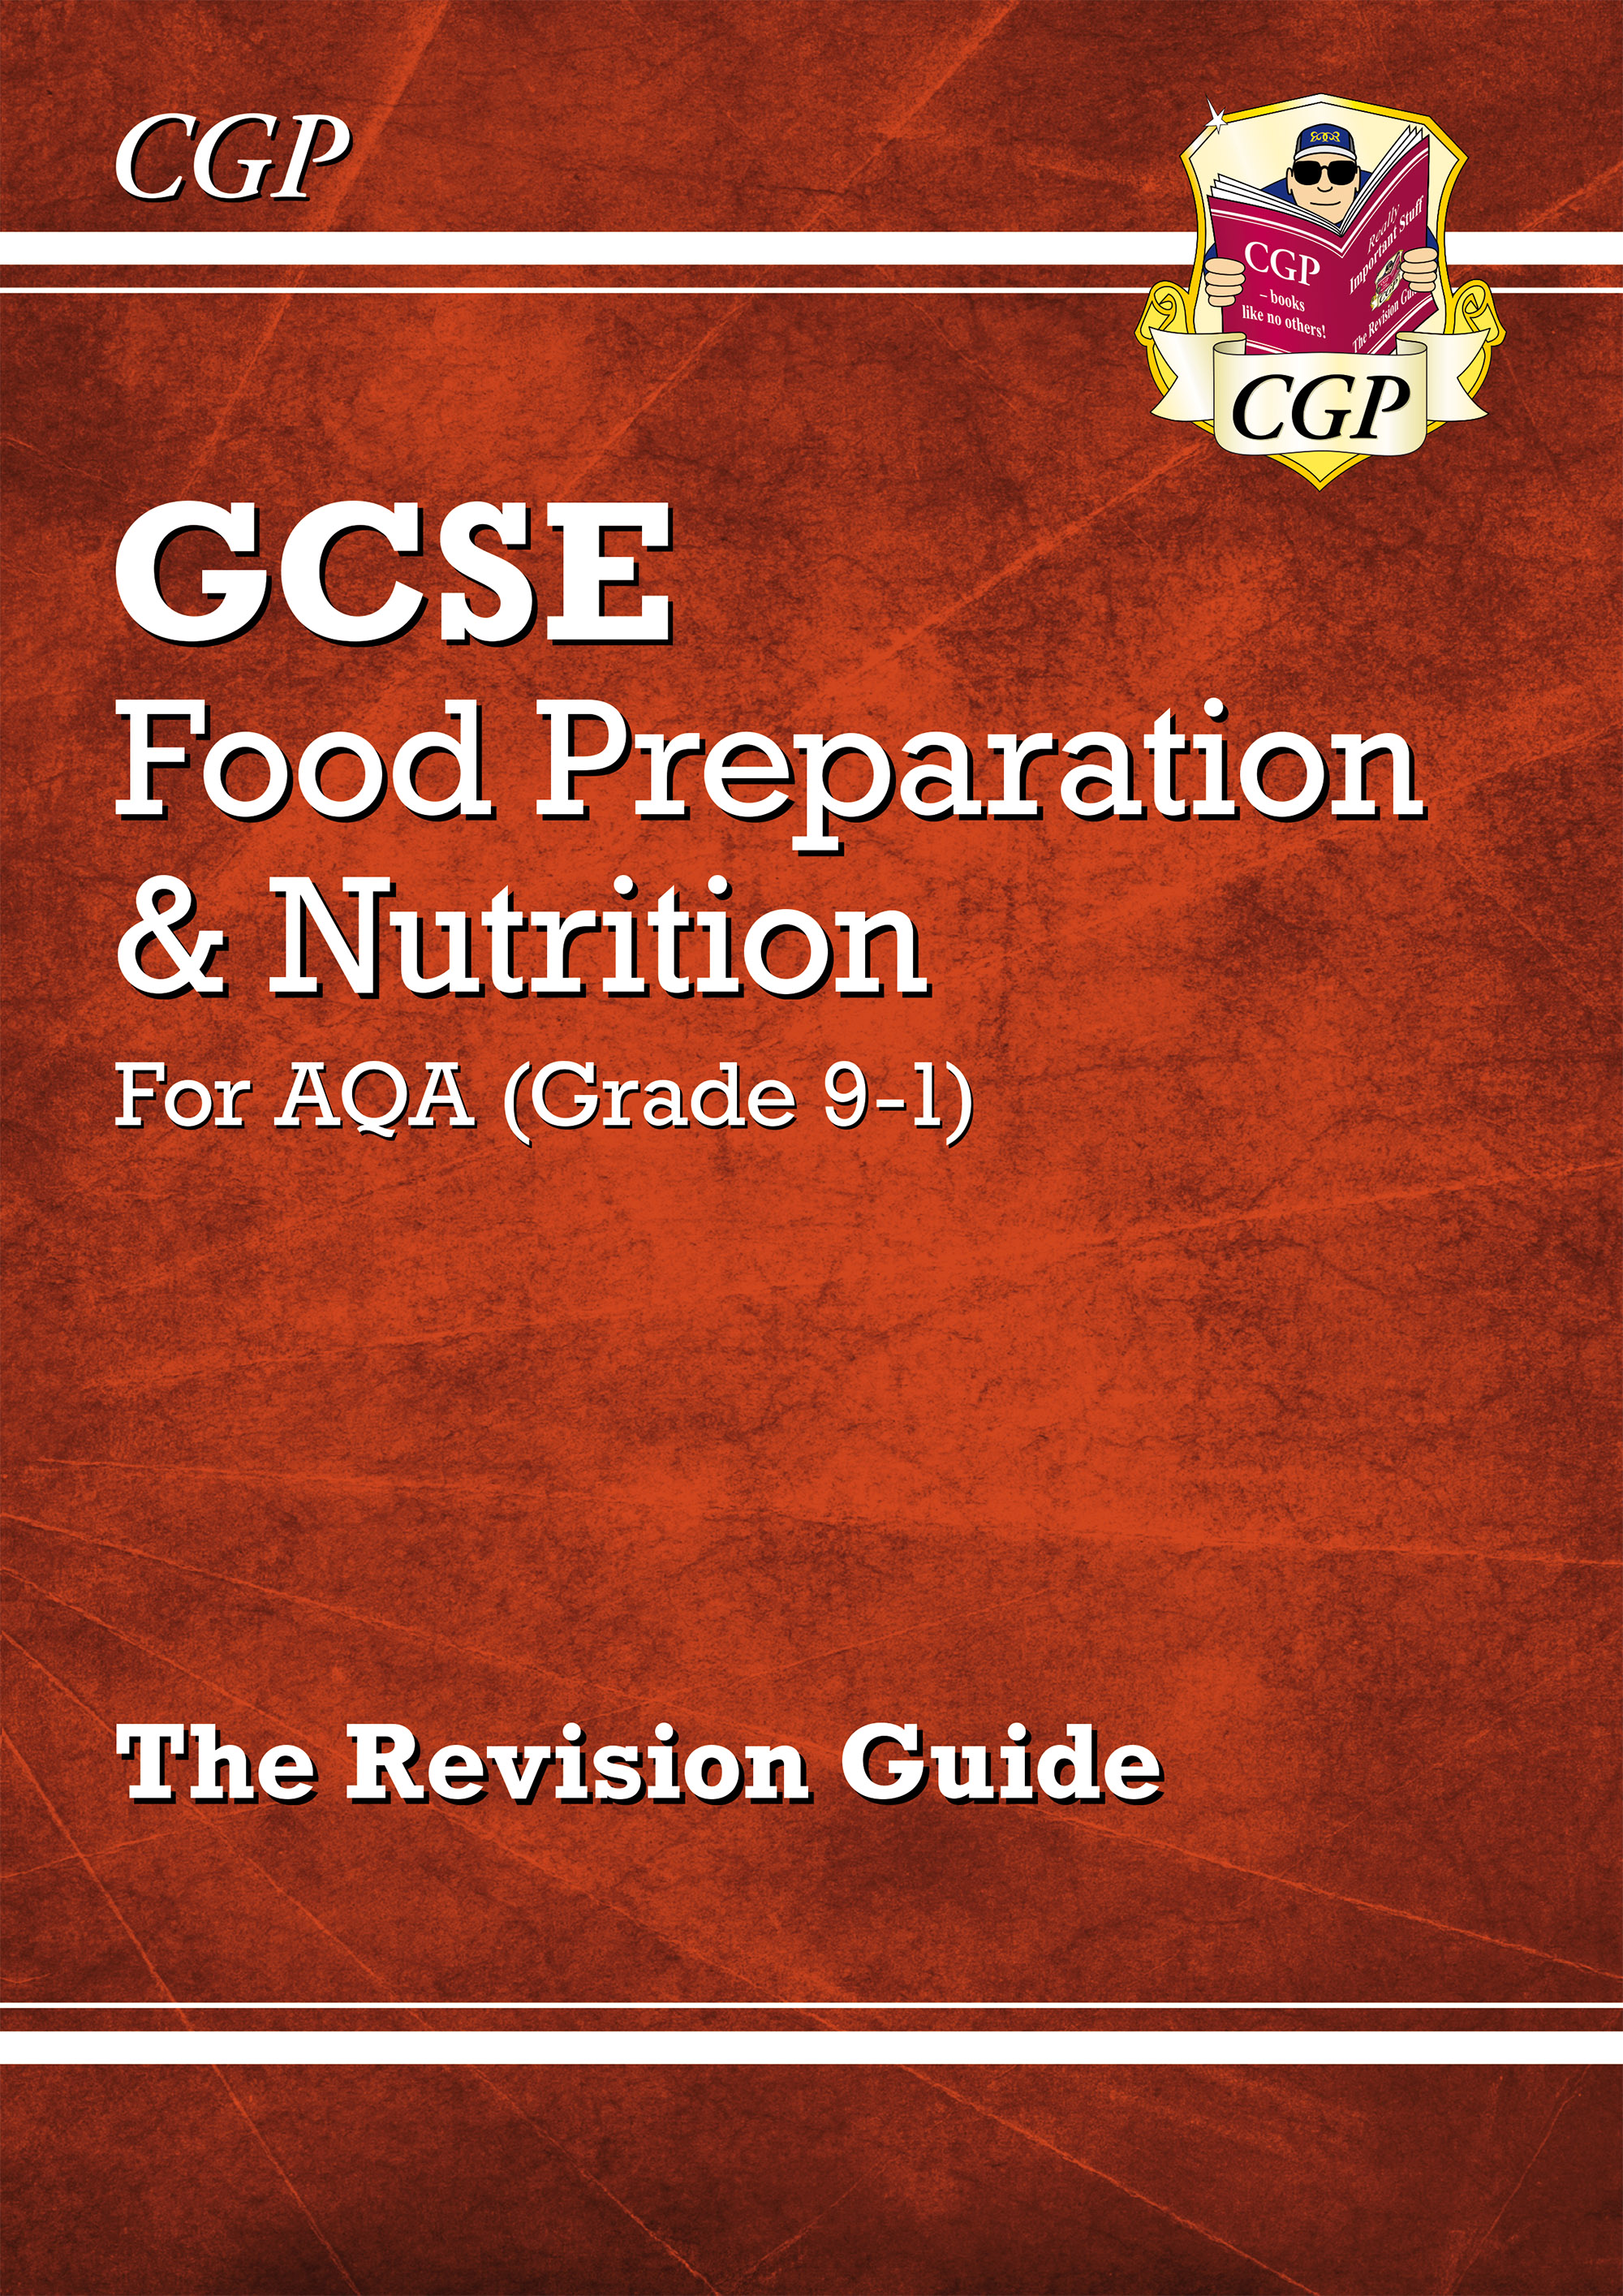 FNAR41D - Grade 9-1 GCSE Food Preparation & Nutrition - AQA Revision Guide (Online Edition)